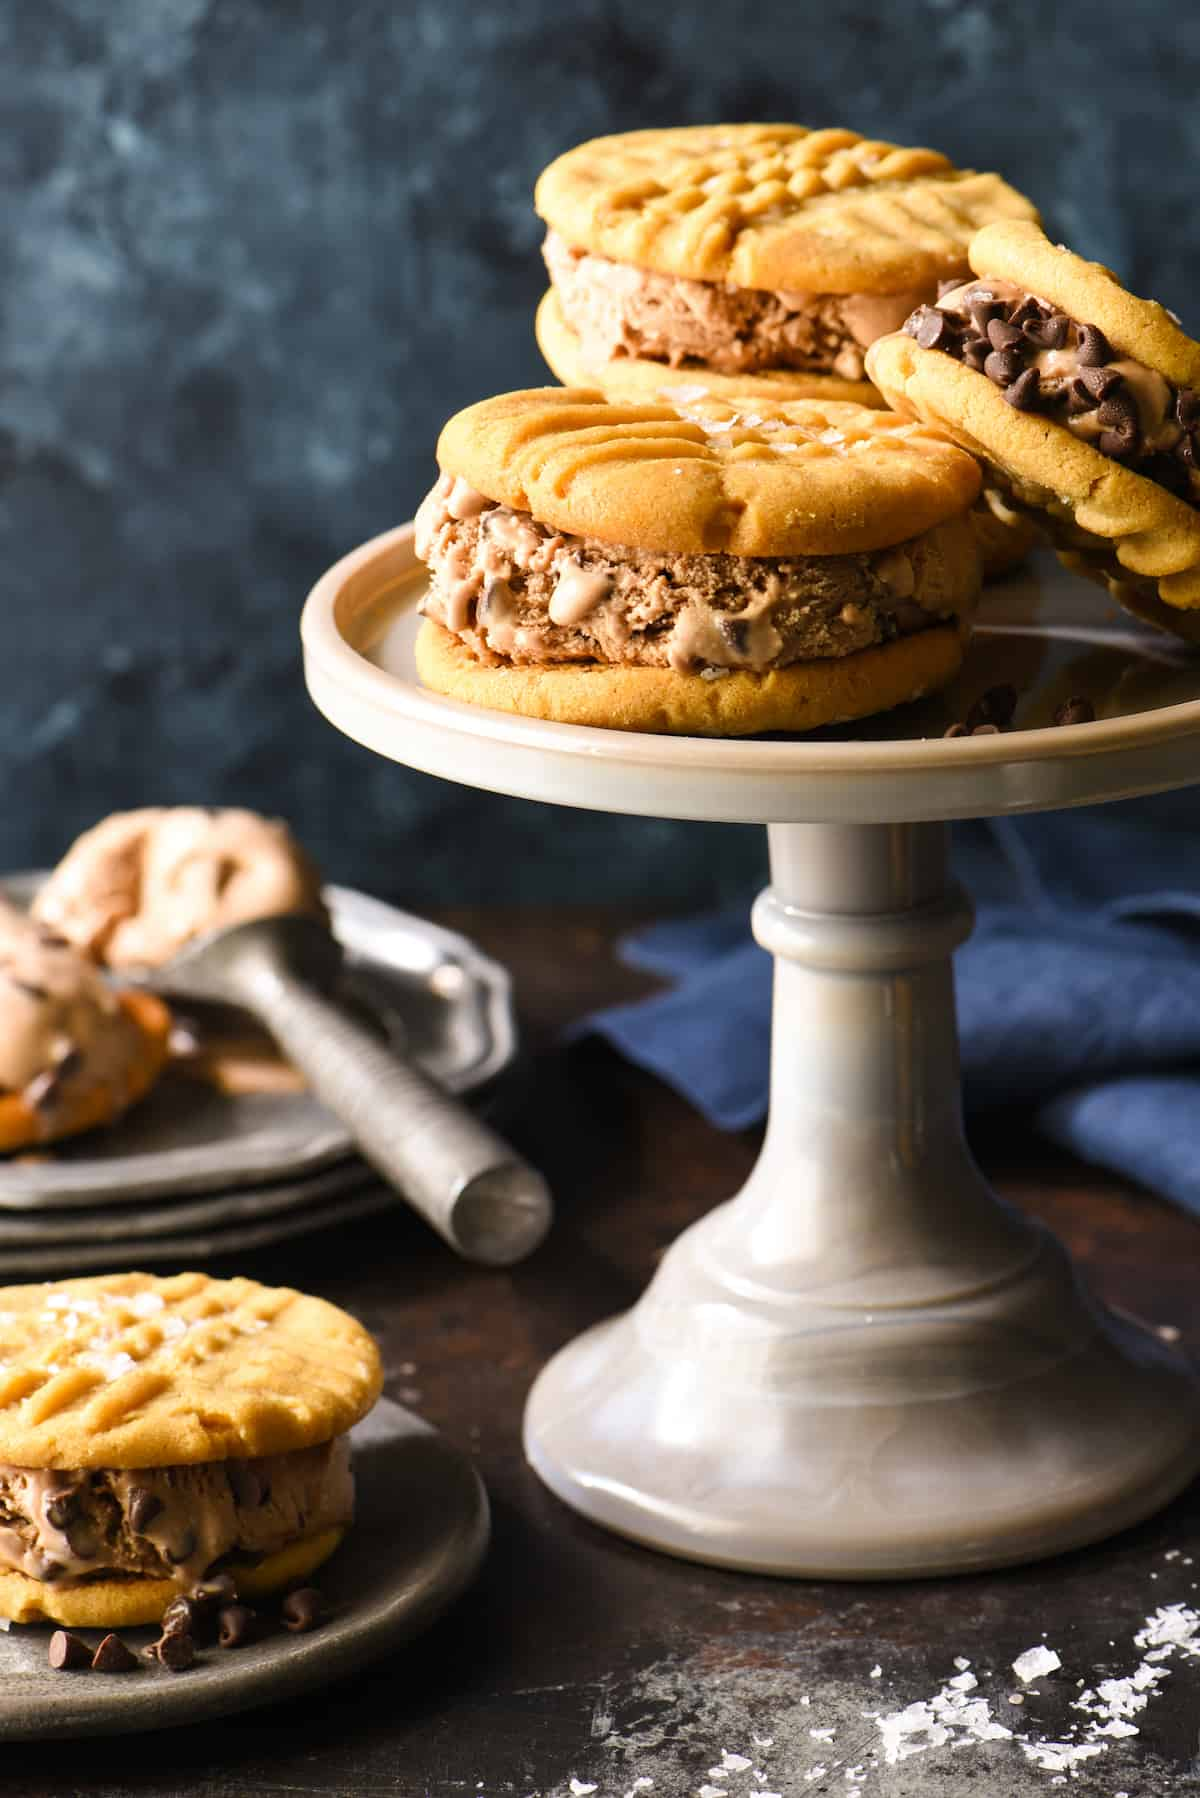 Salted Peanut Butter and Chocolate-Chocolate Chip Ice Cream Sandwiches - Make these for the chocolate and peanut butter lover in your life! Peanut butter cookies are finished with flaky sea salt and then sandwiched with triple-chocolate ice cream. | foxeslovelemons.com